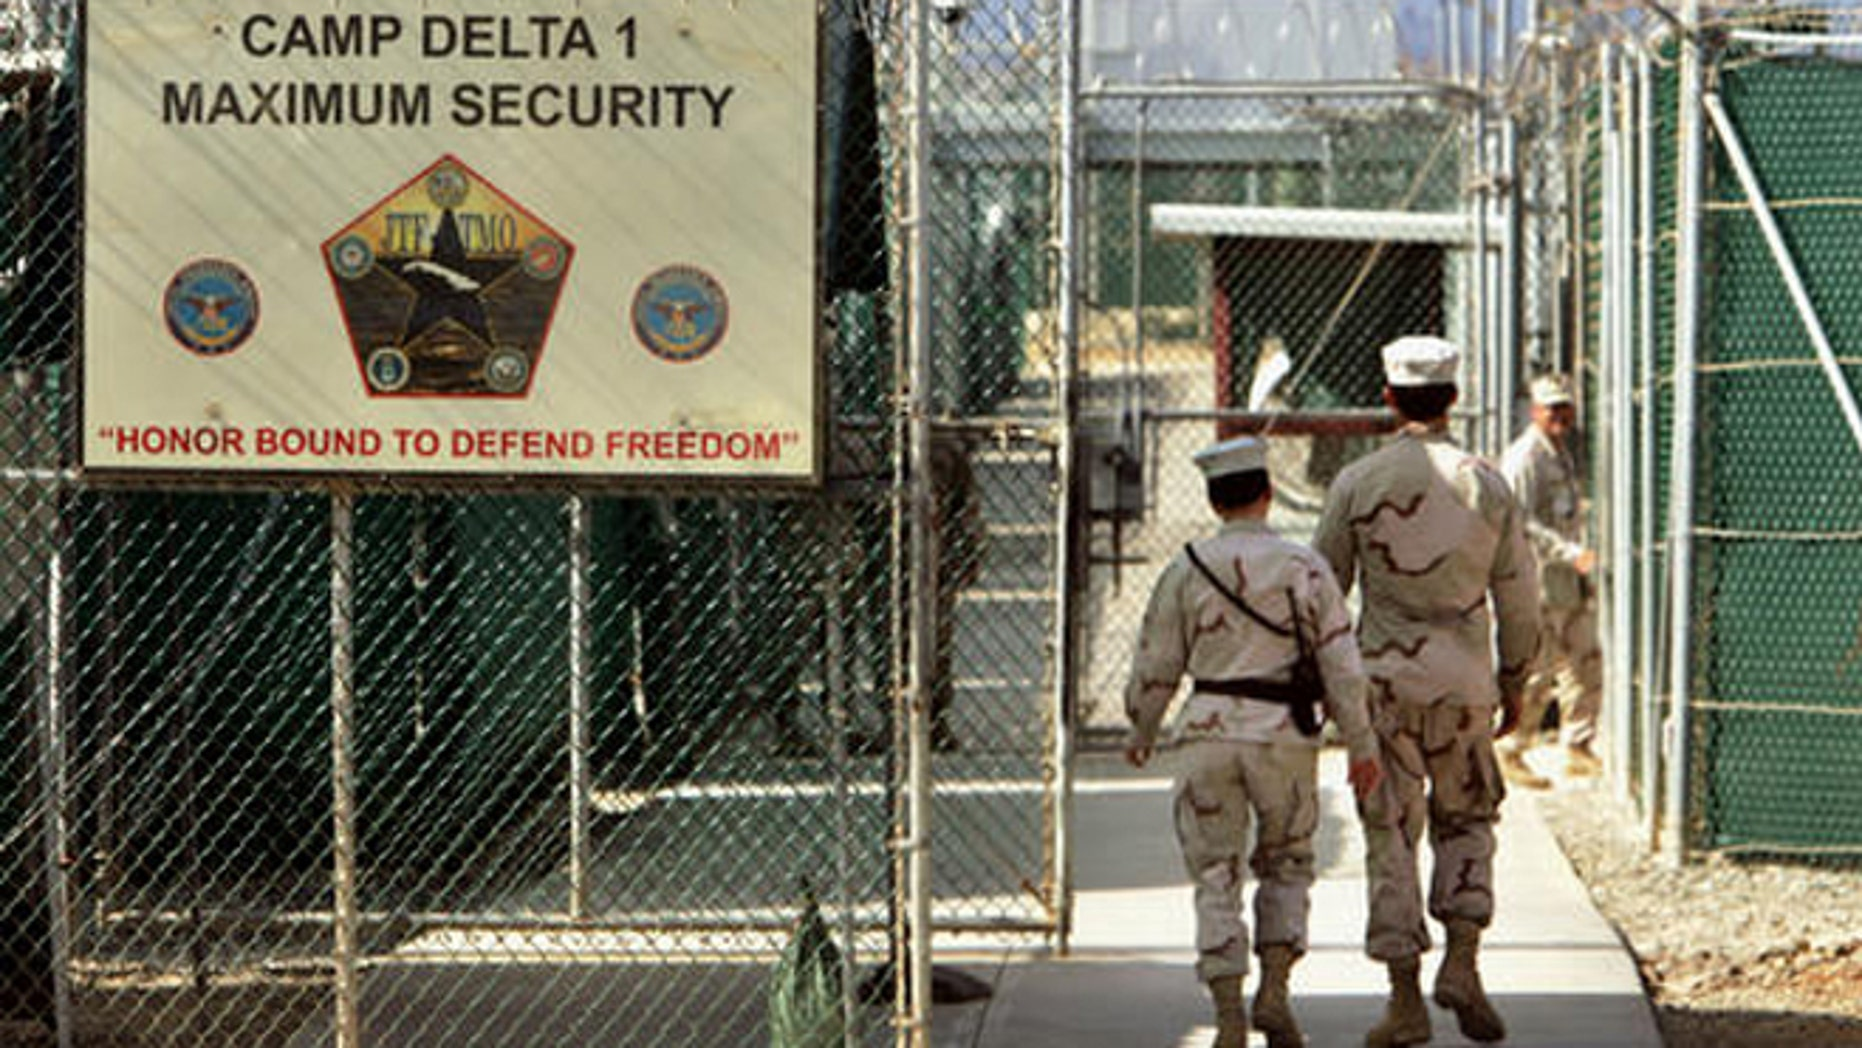 FILE - In this June 27, 2006 file photo, reviewed by a Defense Department, U.S. military guards walk within Camp Delta military-run prison, at the Guantanamo Bay U.S. Naval Base, Cuba. A federal appeals court expressed concerns on Thursday, Sept. 8, 2016, about the prospect of ordering the Obama administration to release graphic videos of a former Guantanamo Bay inmate being force-fed during a hunger strike.  (AP Photo/Brennan Linsley, File)